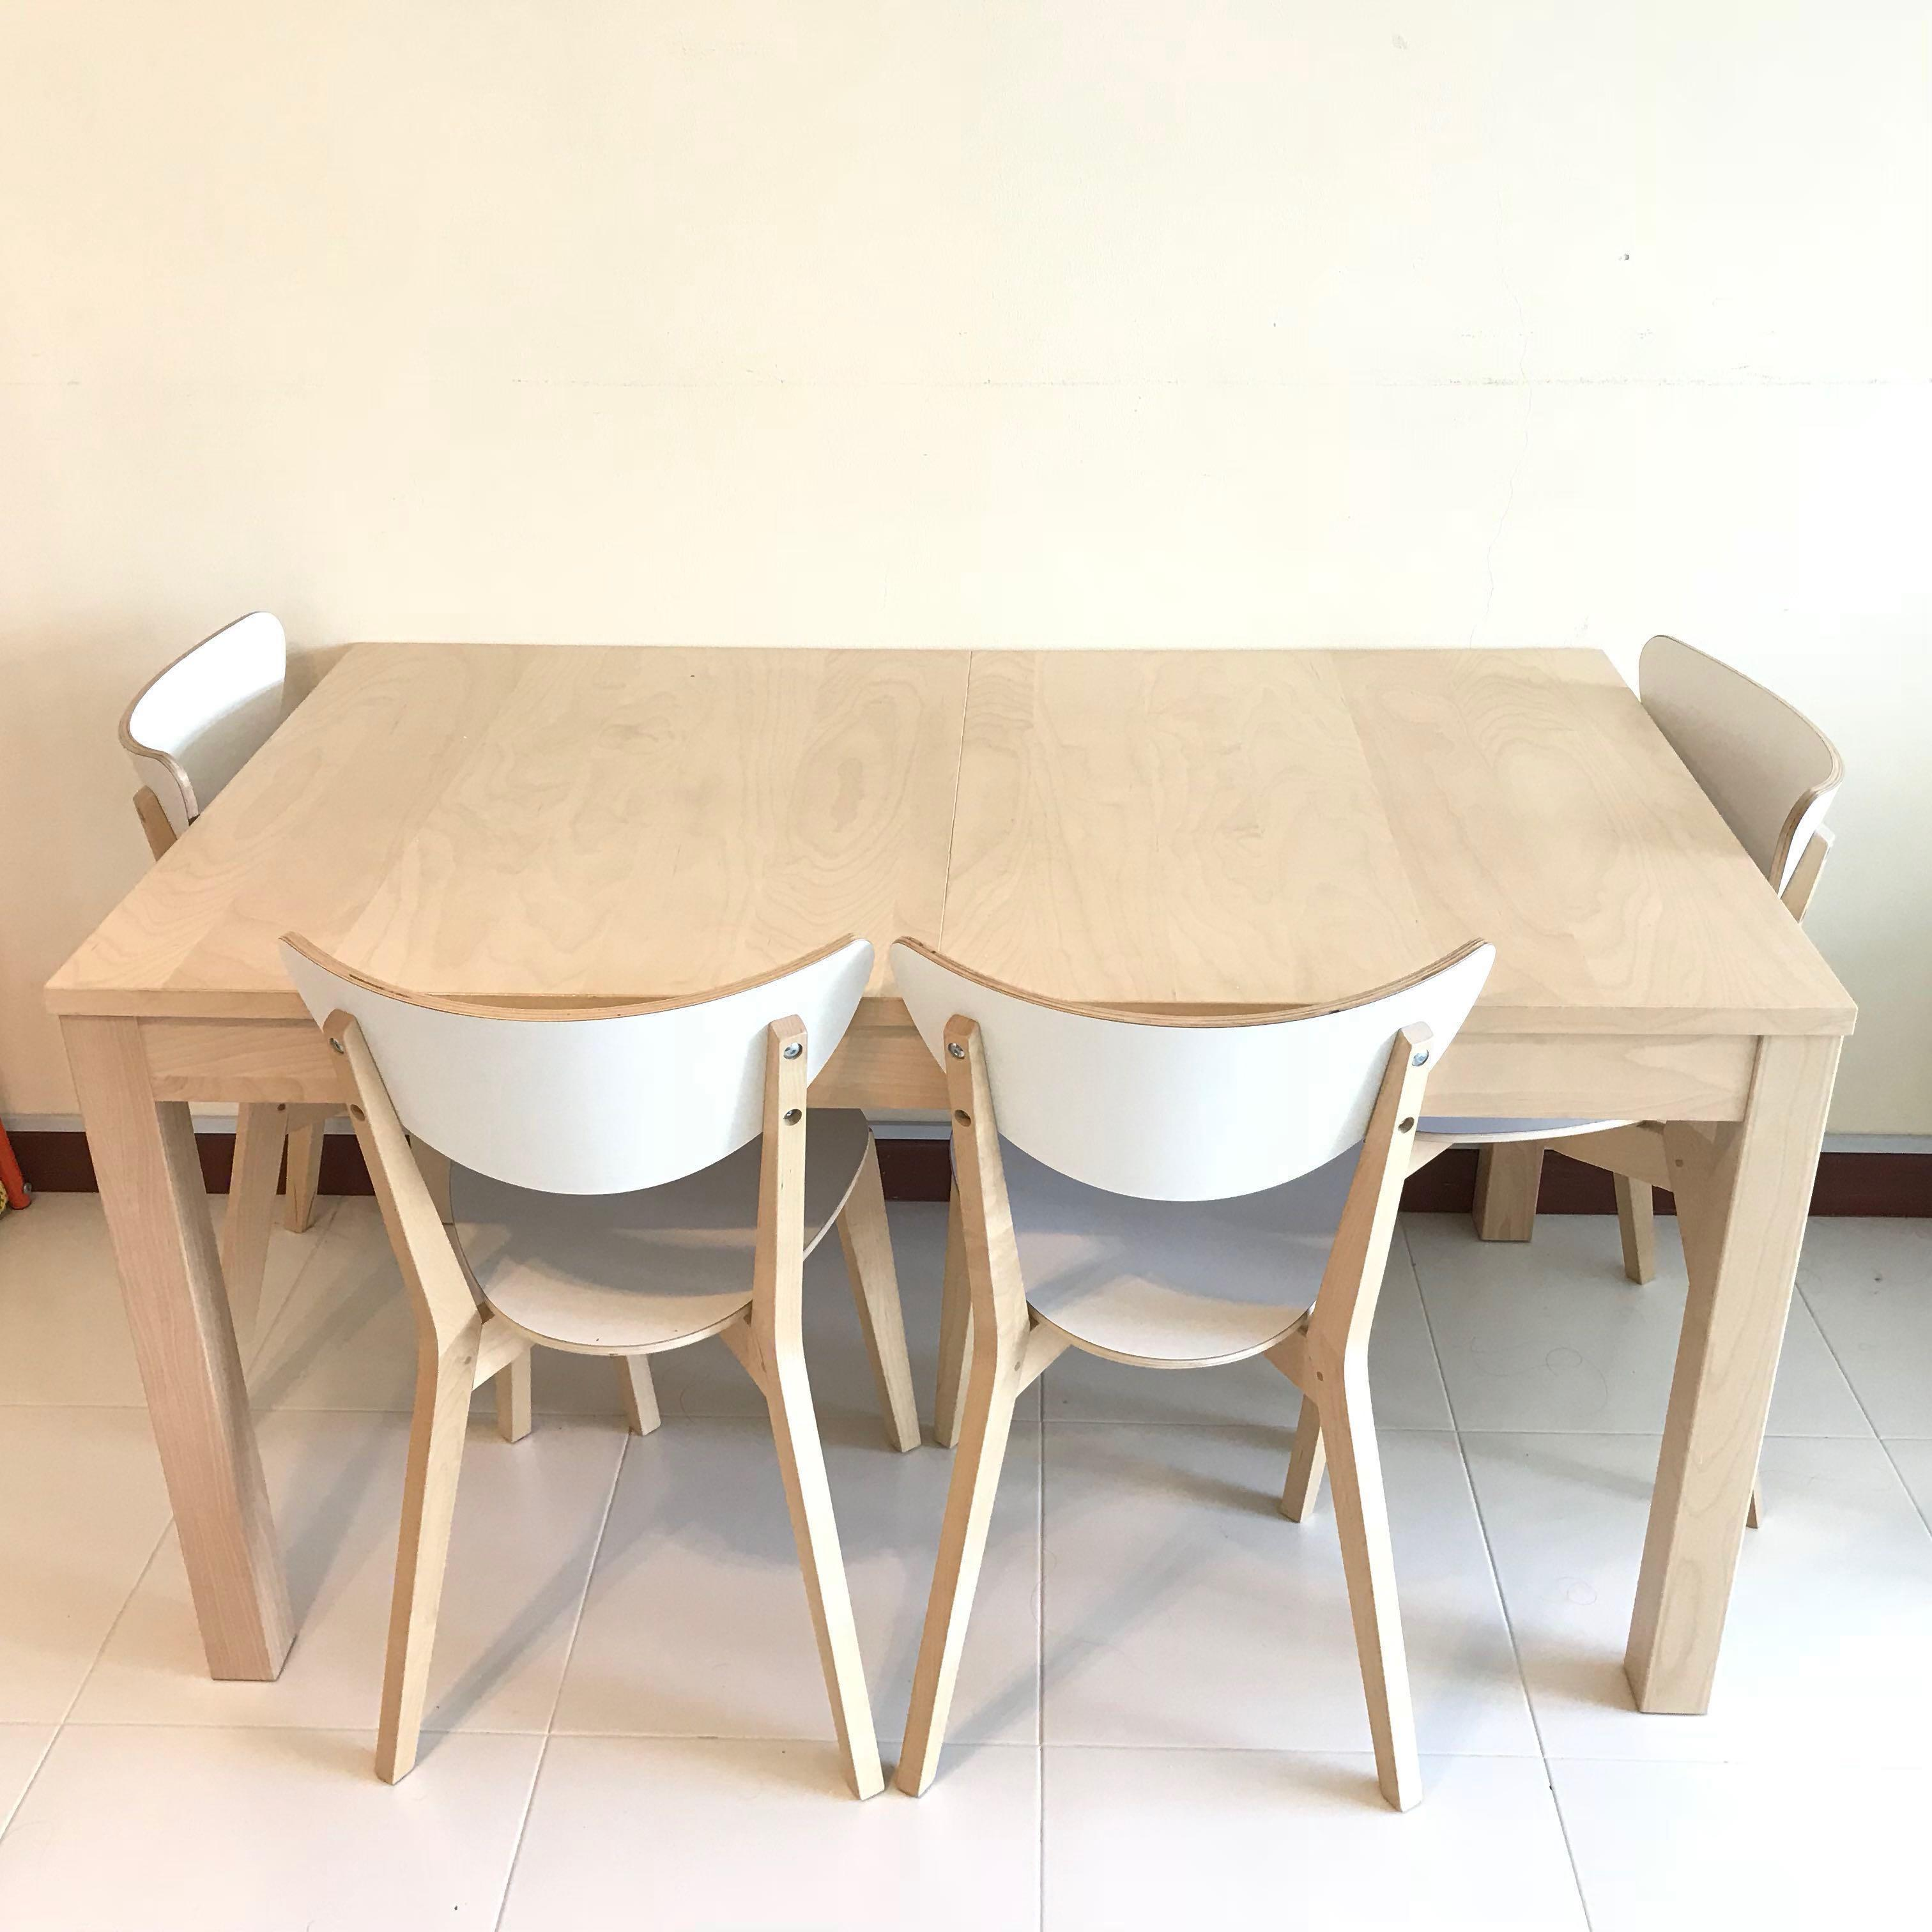 Ikea Bjursta Extendable Table Furniture Tables Chairs On Carousell